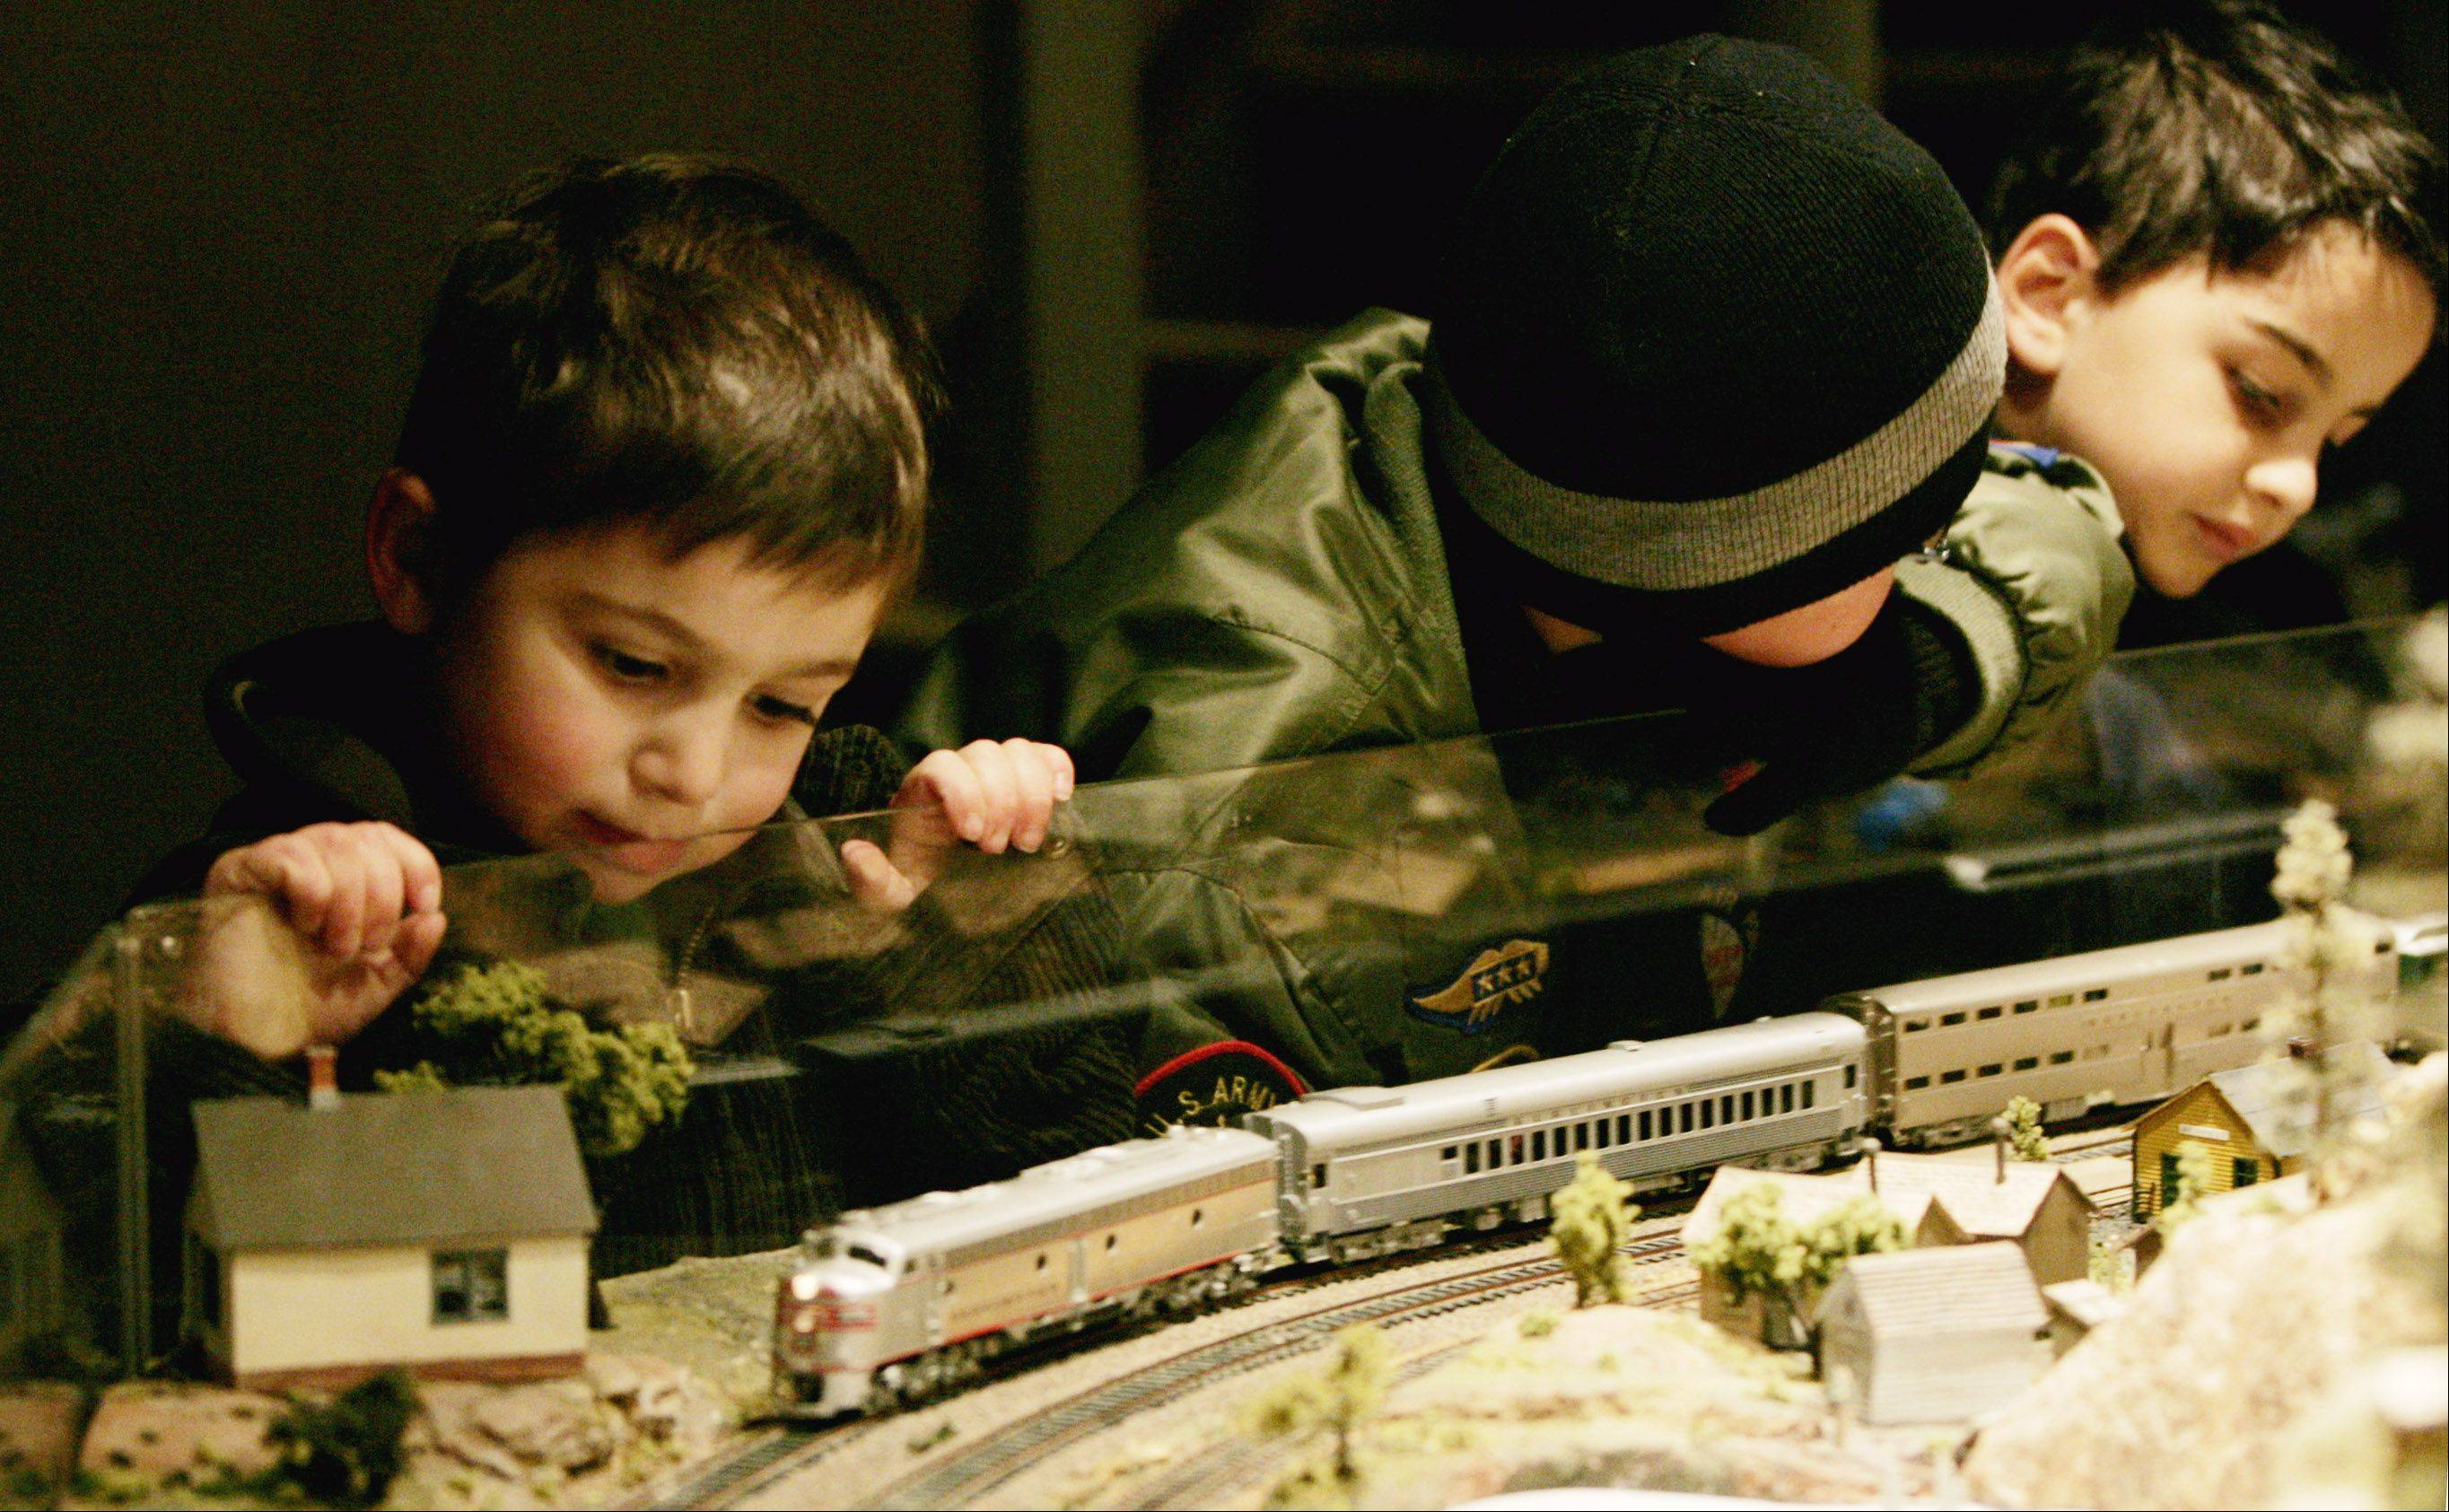 An HO model train display draws railroad fans of all ages during Once Upon a Christmas.